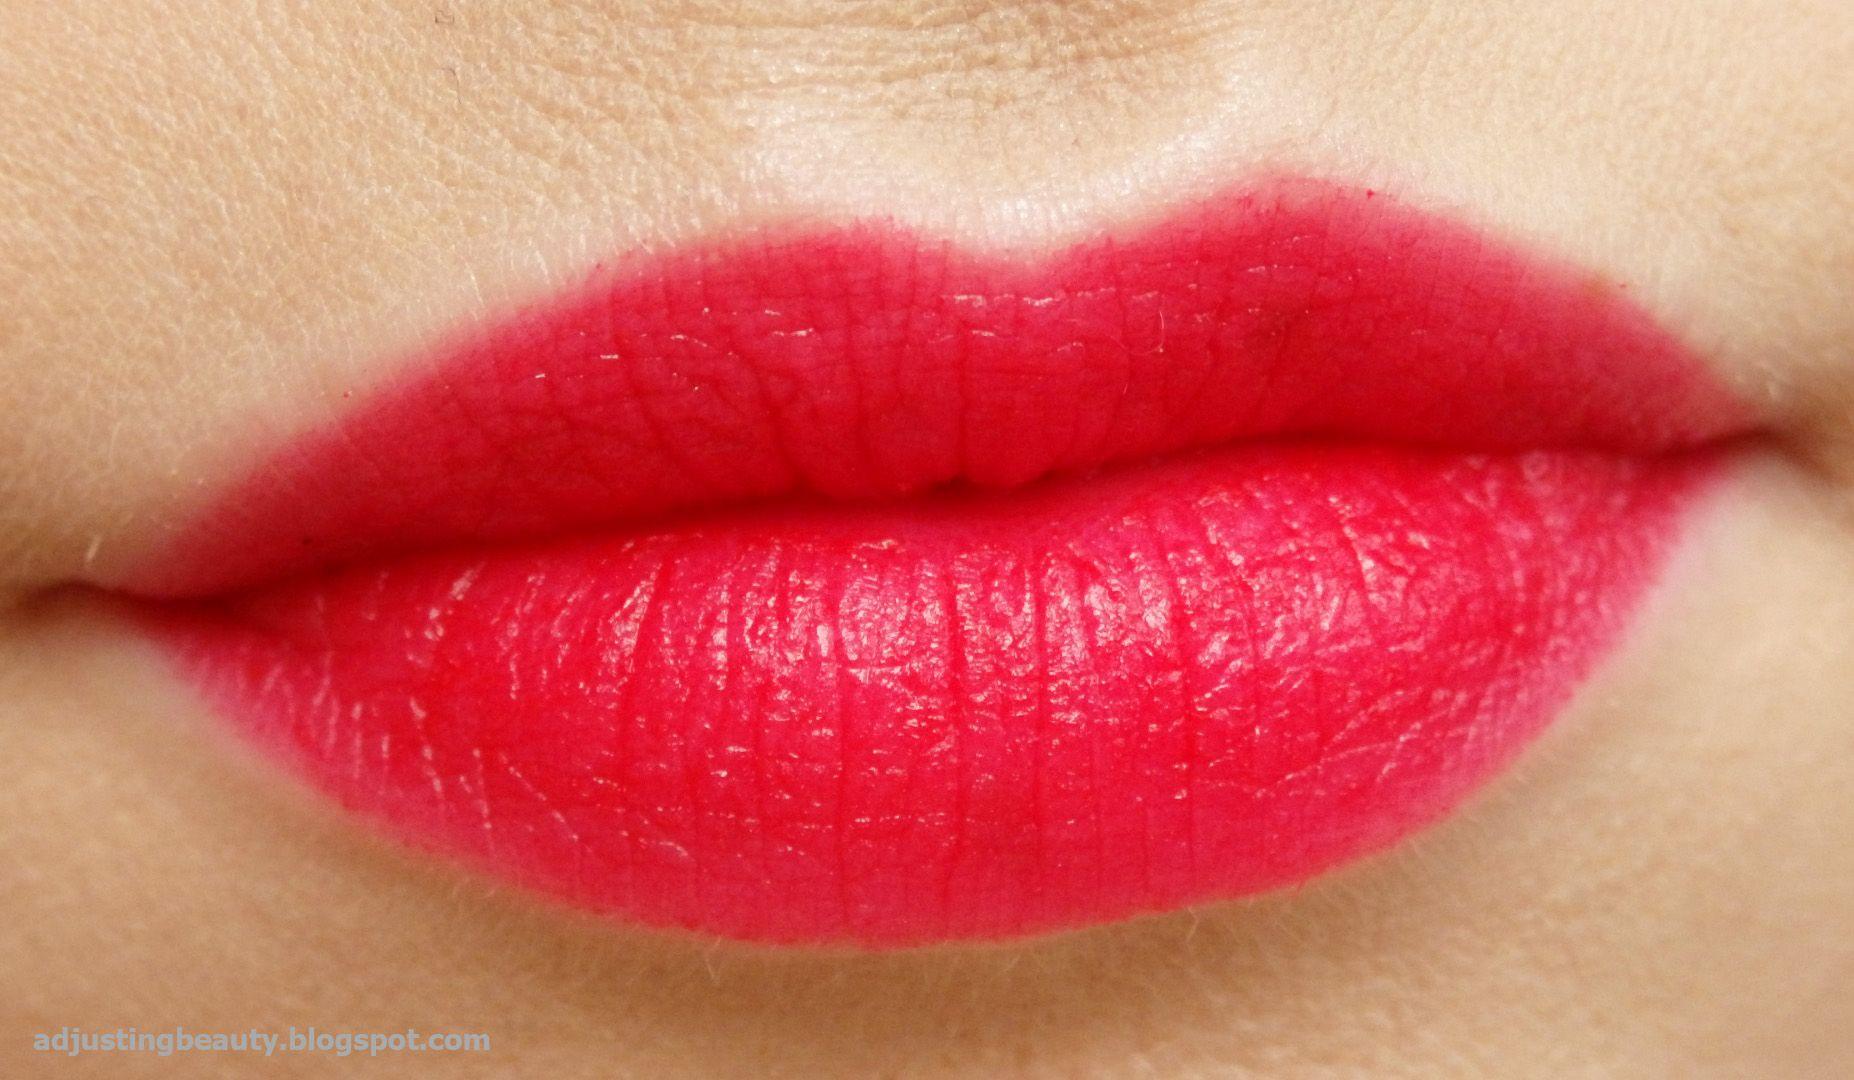 Review of Revolution Makeup London Lipstick in Dare